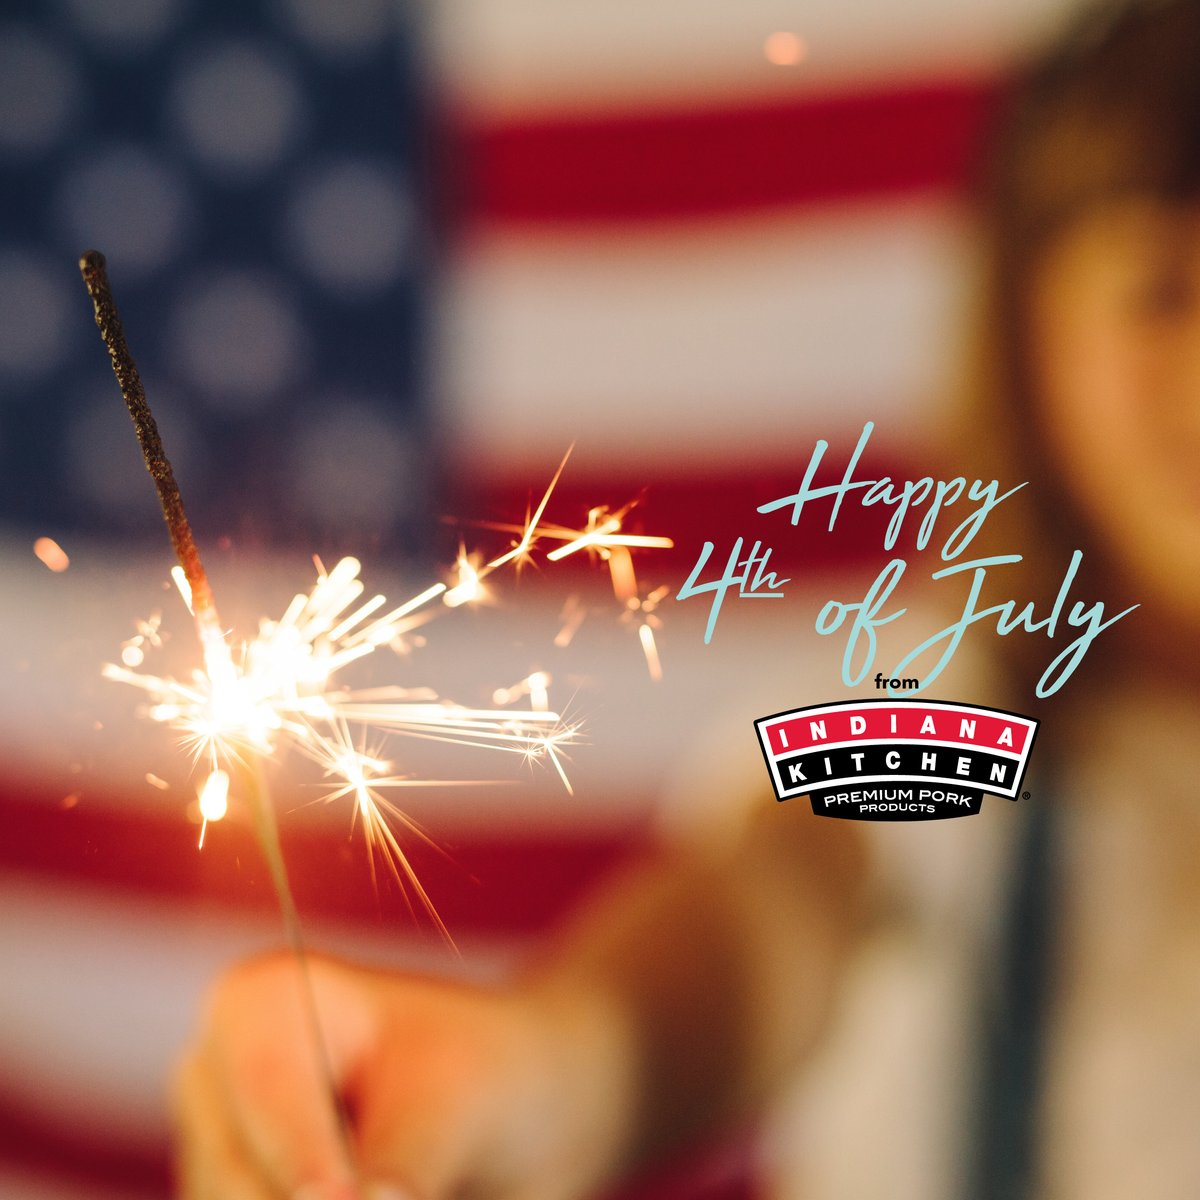 Here's to life, liberty and the pursuit of happiness, which we all know involves bacon.  Happy 244th birthday, America! 🇺🇸  💥   Enjoy a safe and joyful 4th of July weekend, everybody! https://t.co/9SDyrCqxgg